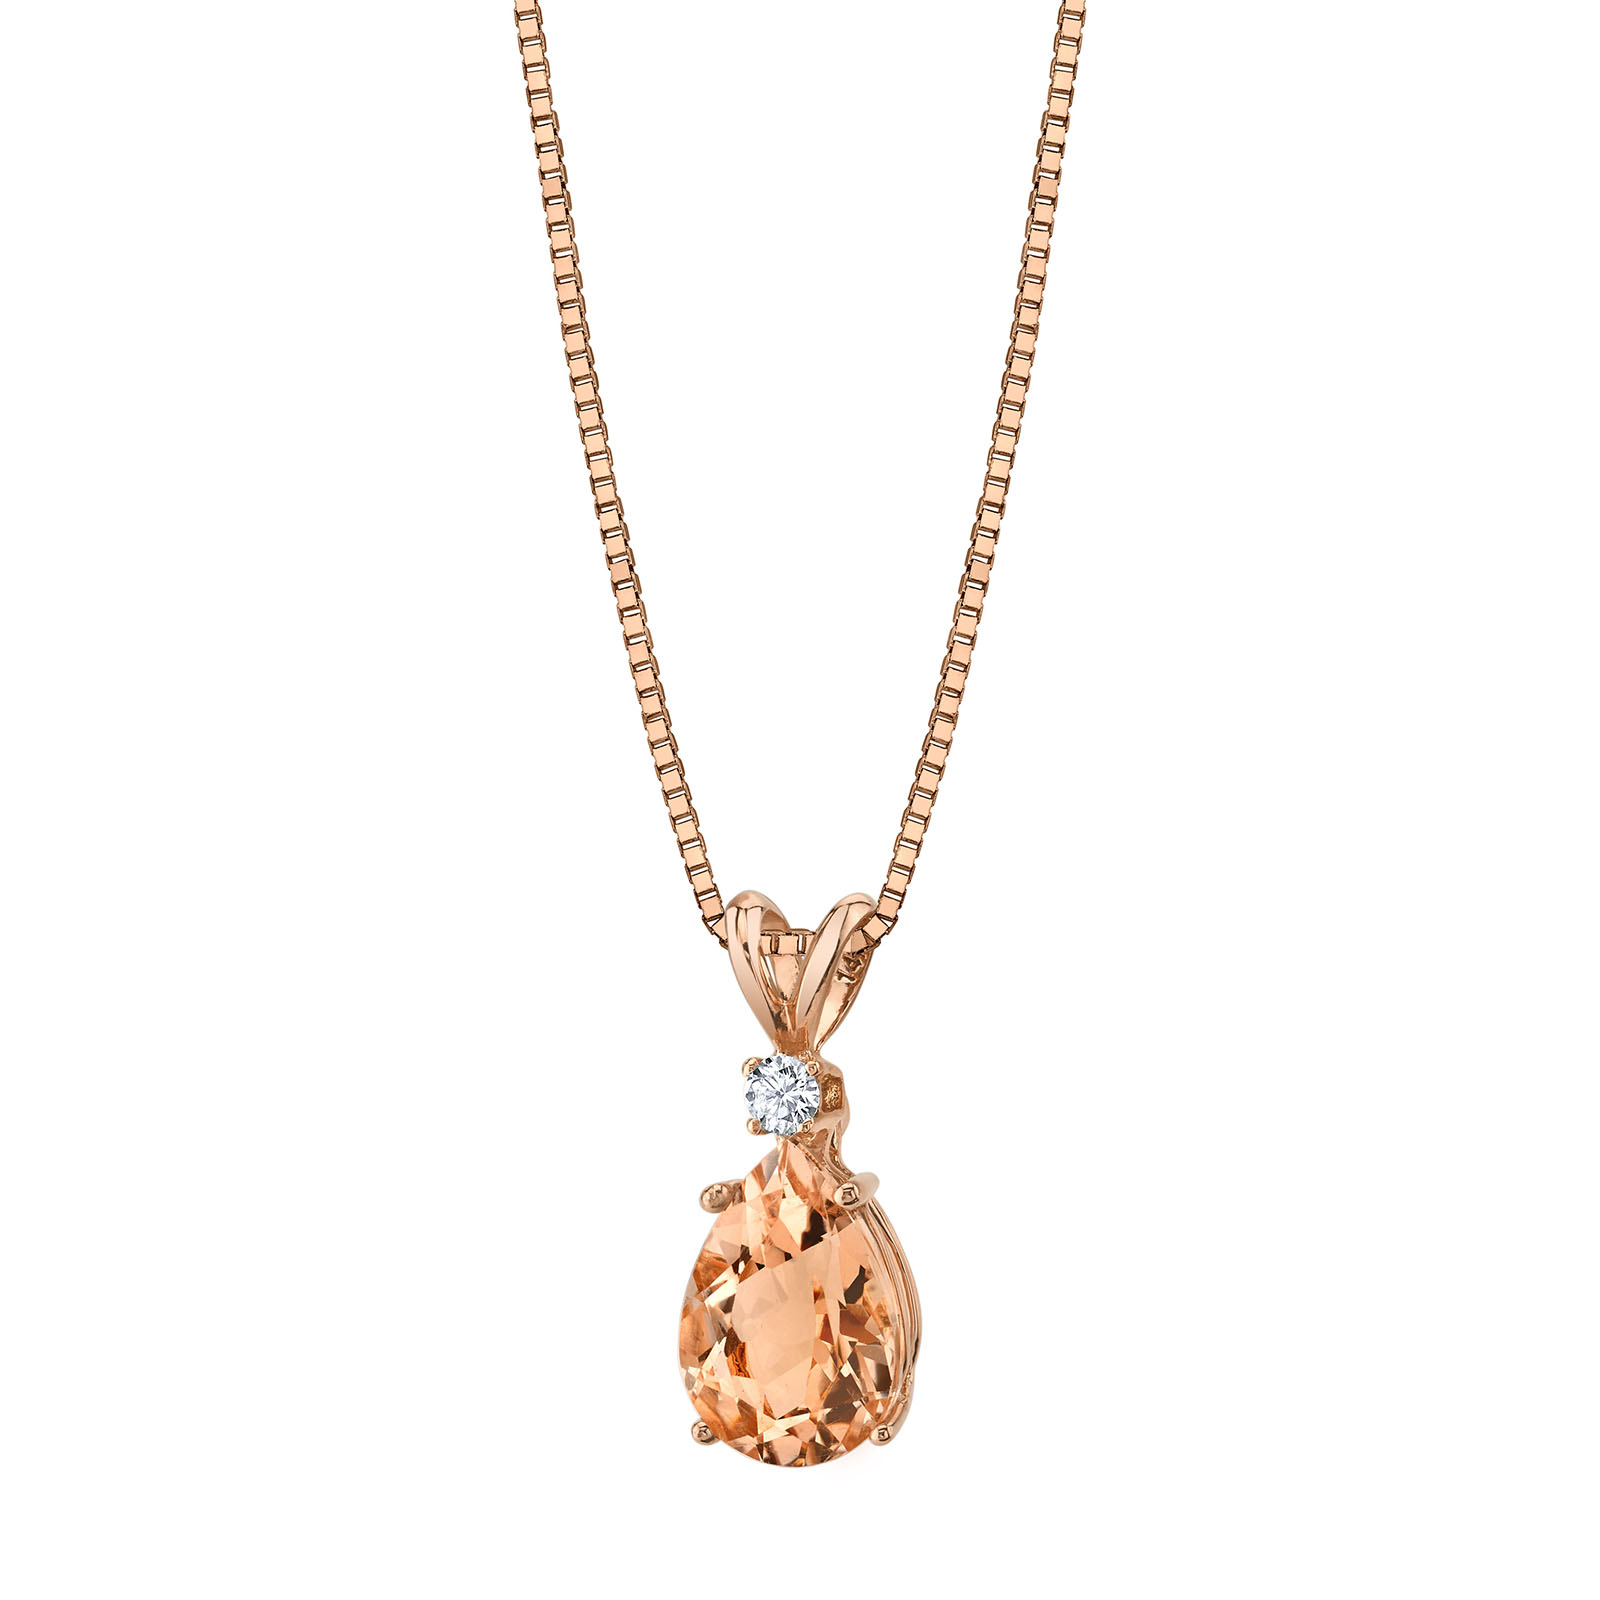 Morganite & Diamond 9ct Rose Gold Pendant Necklace with Rose Gold Plated Silver Chain